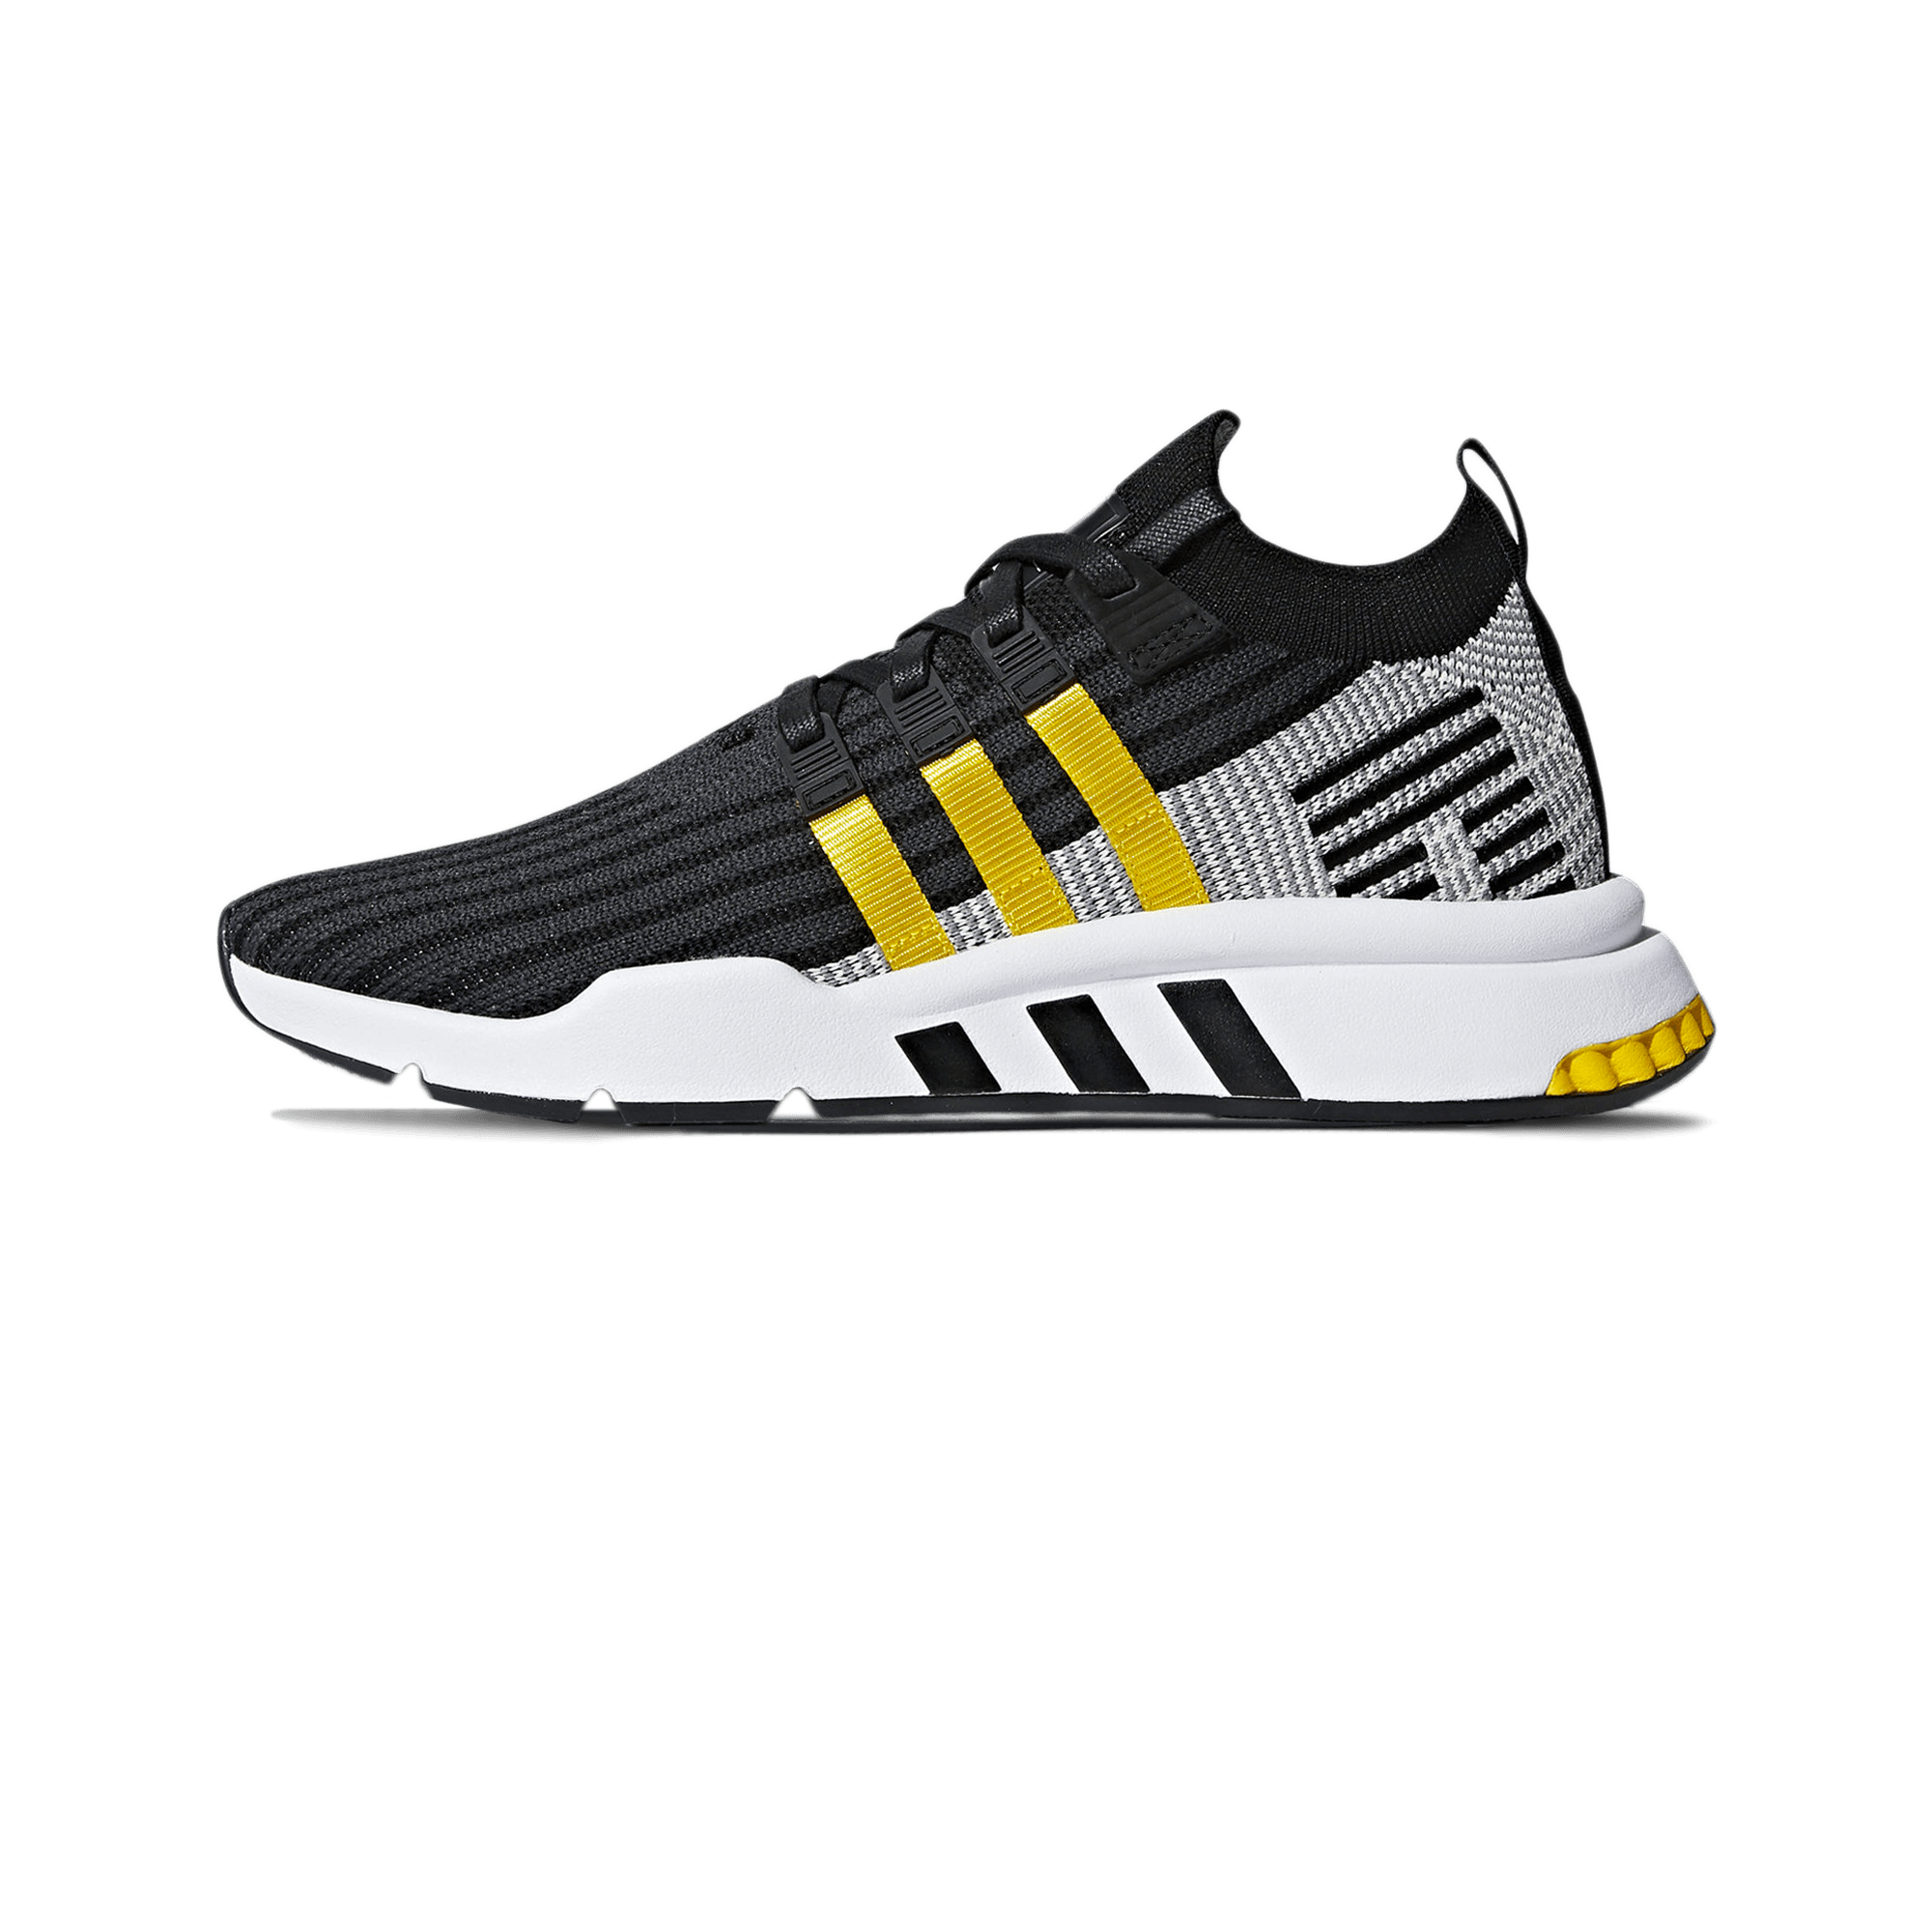 100% authentic ae0d8 558f2 adidas EQT Support Mid ADV black / yellow / white - Men | Holypopstore.com